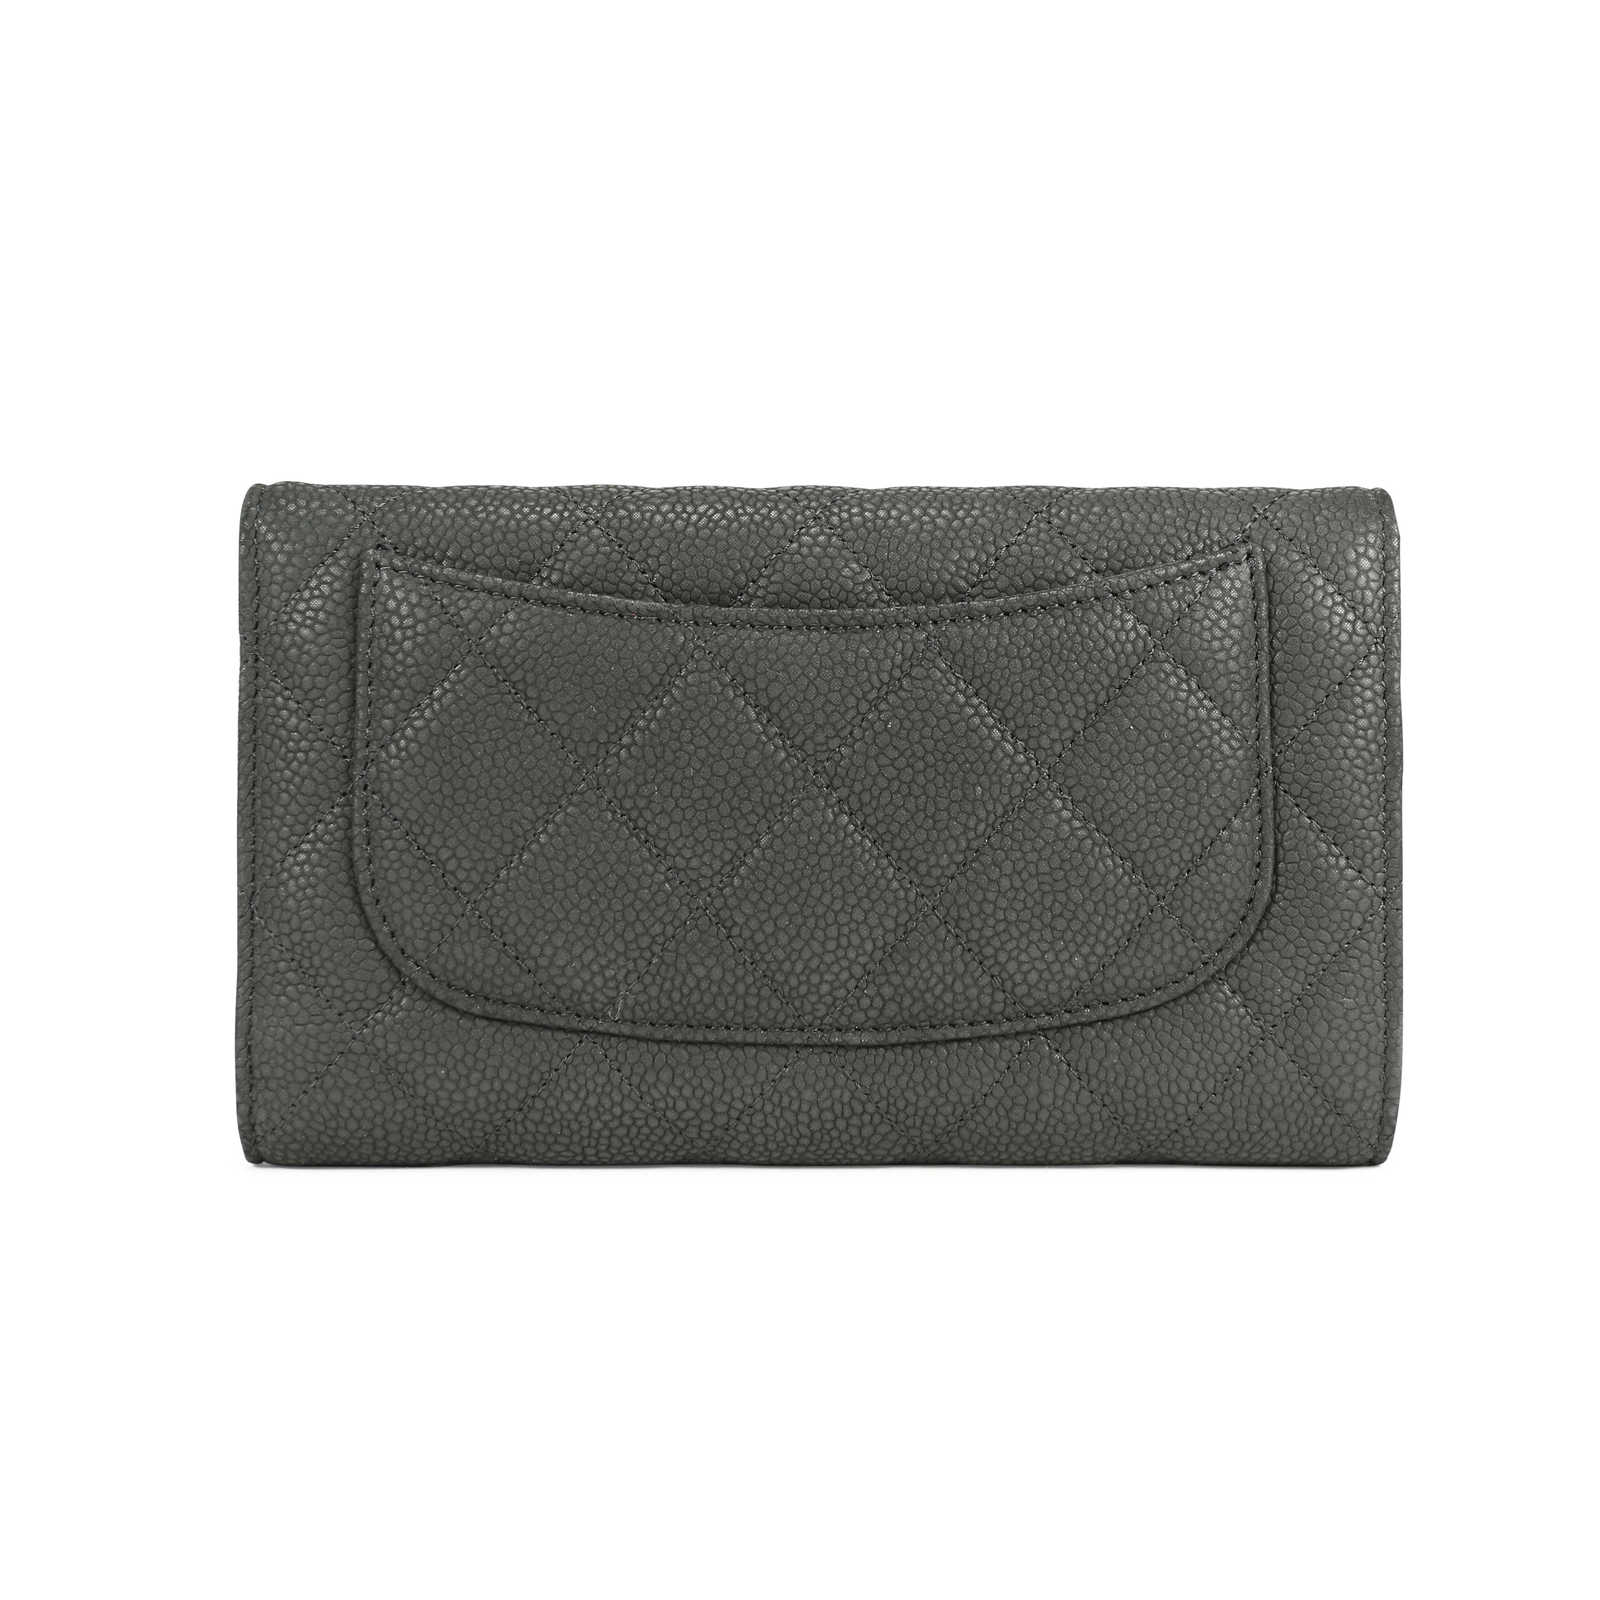 20466bee328eaf ... Authentic Second Hand Chanel Caviar Quilted Gusset Long Flap Wallet  (PSS-092-00013 ...